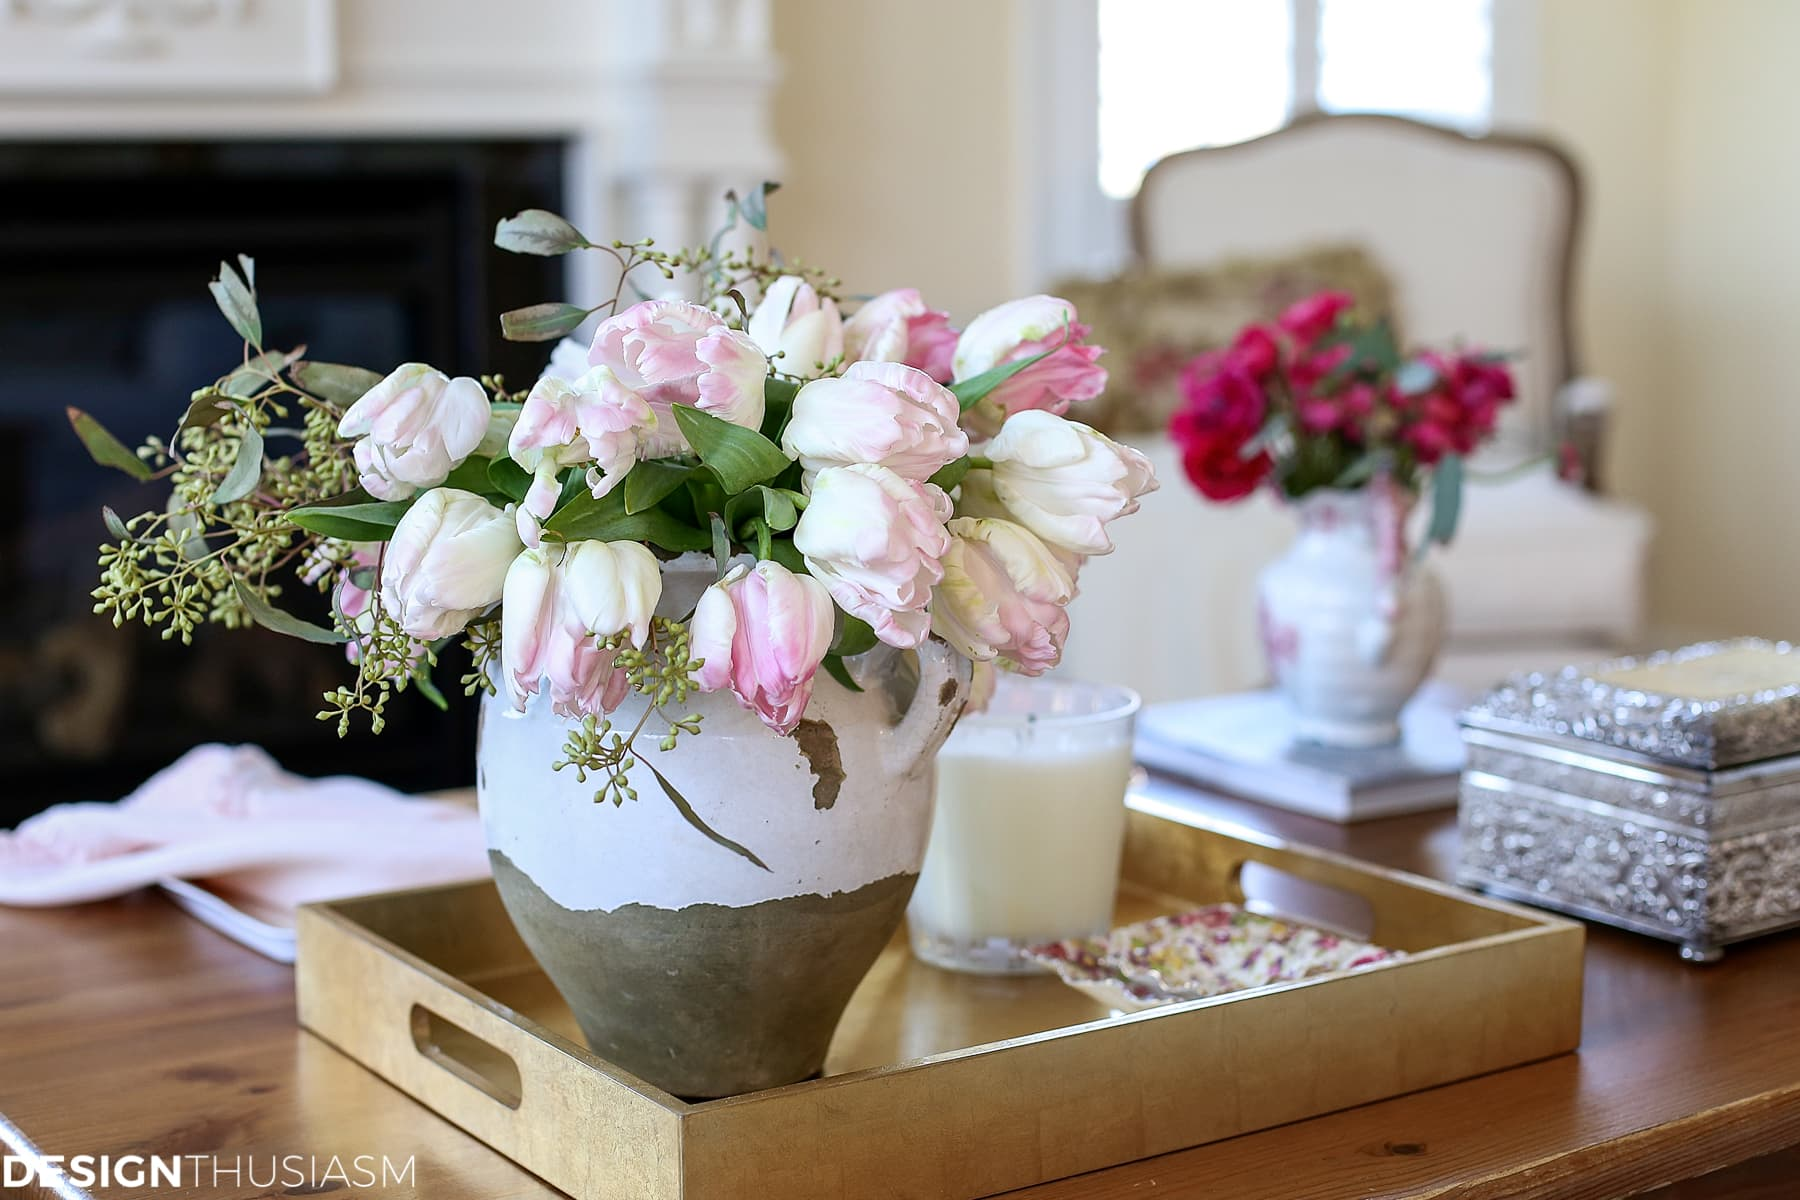 two flower arrangements with pink flowers